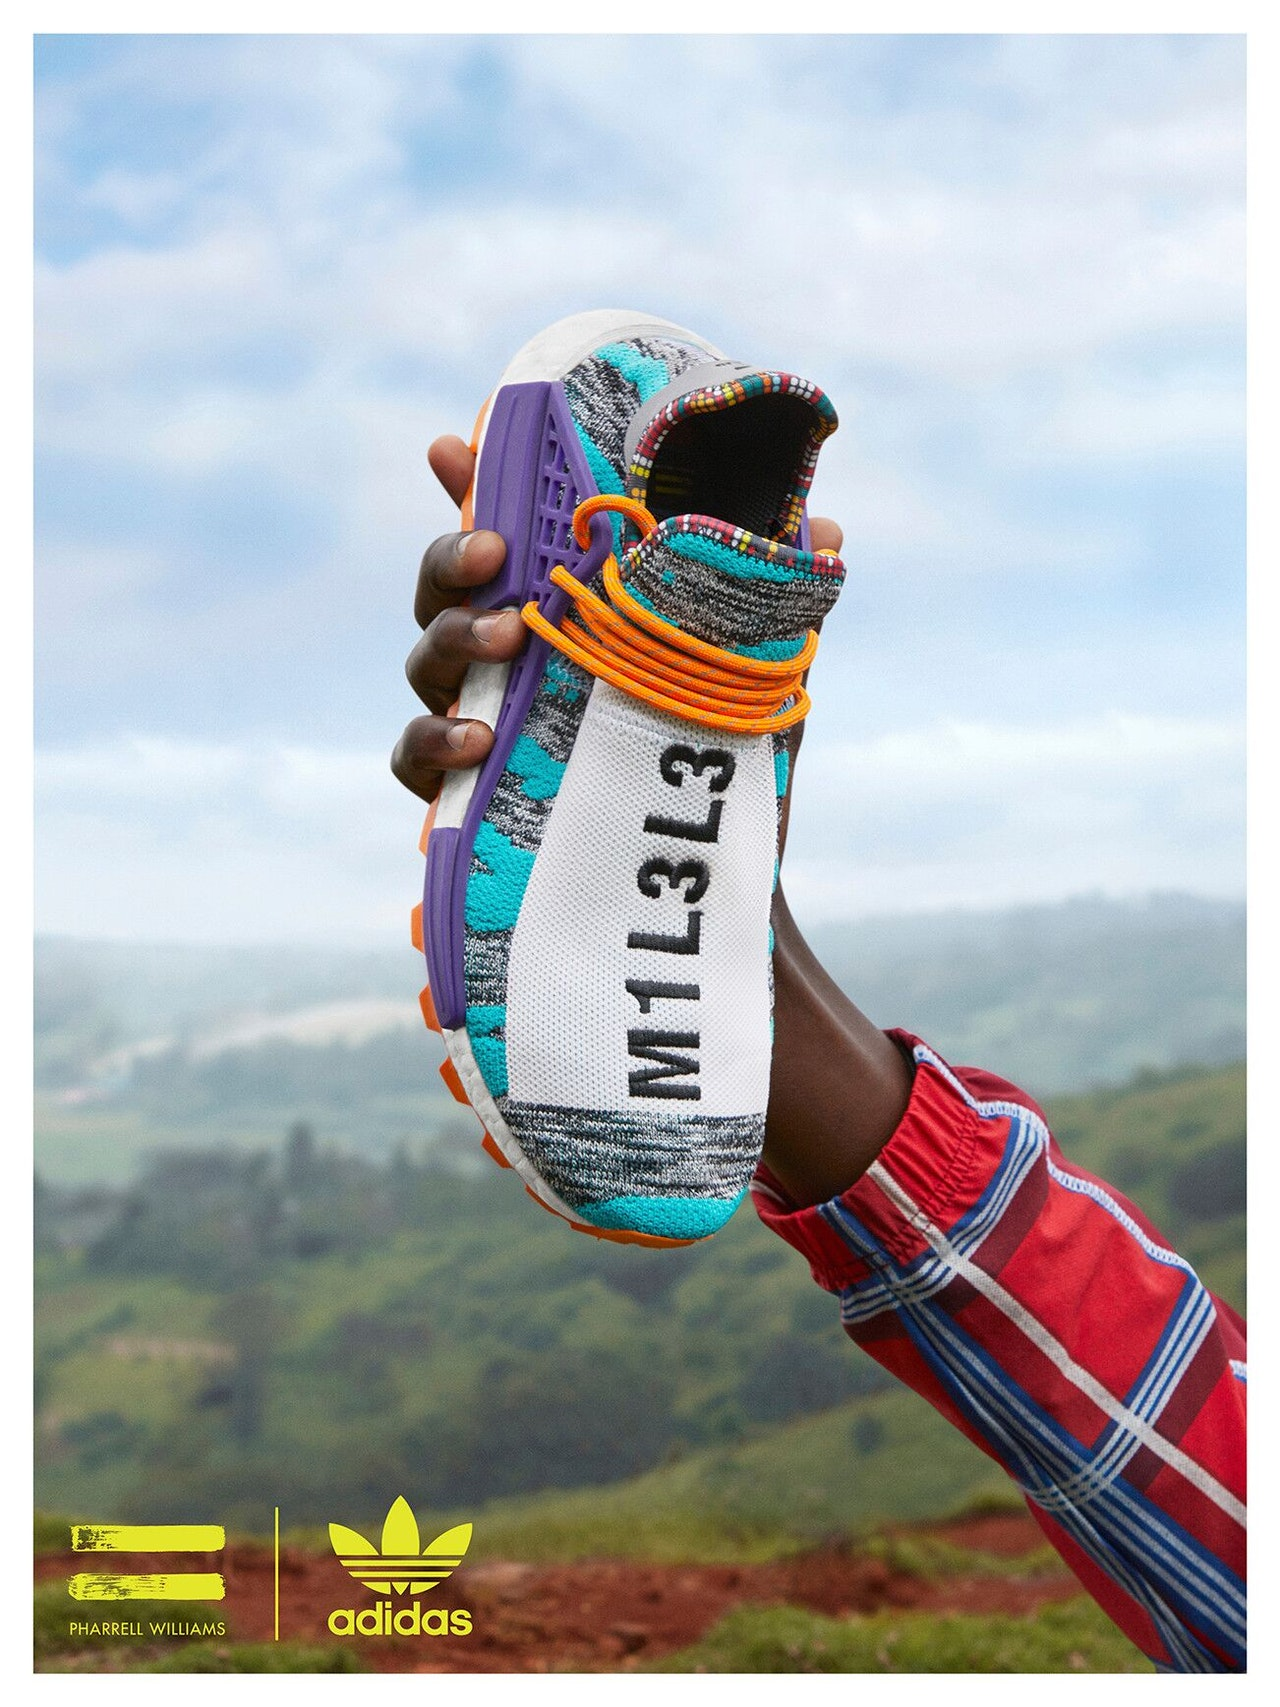 d94de9454 The All-New Pharrell Williams x Adidas  Solar Hu  Collection Draws  Inspiration From East Africa